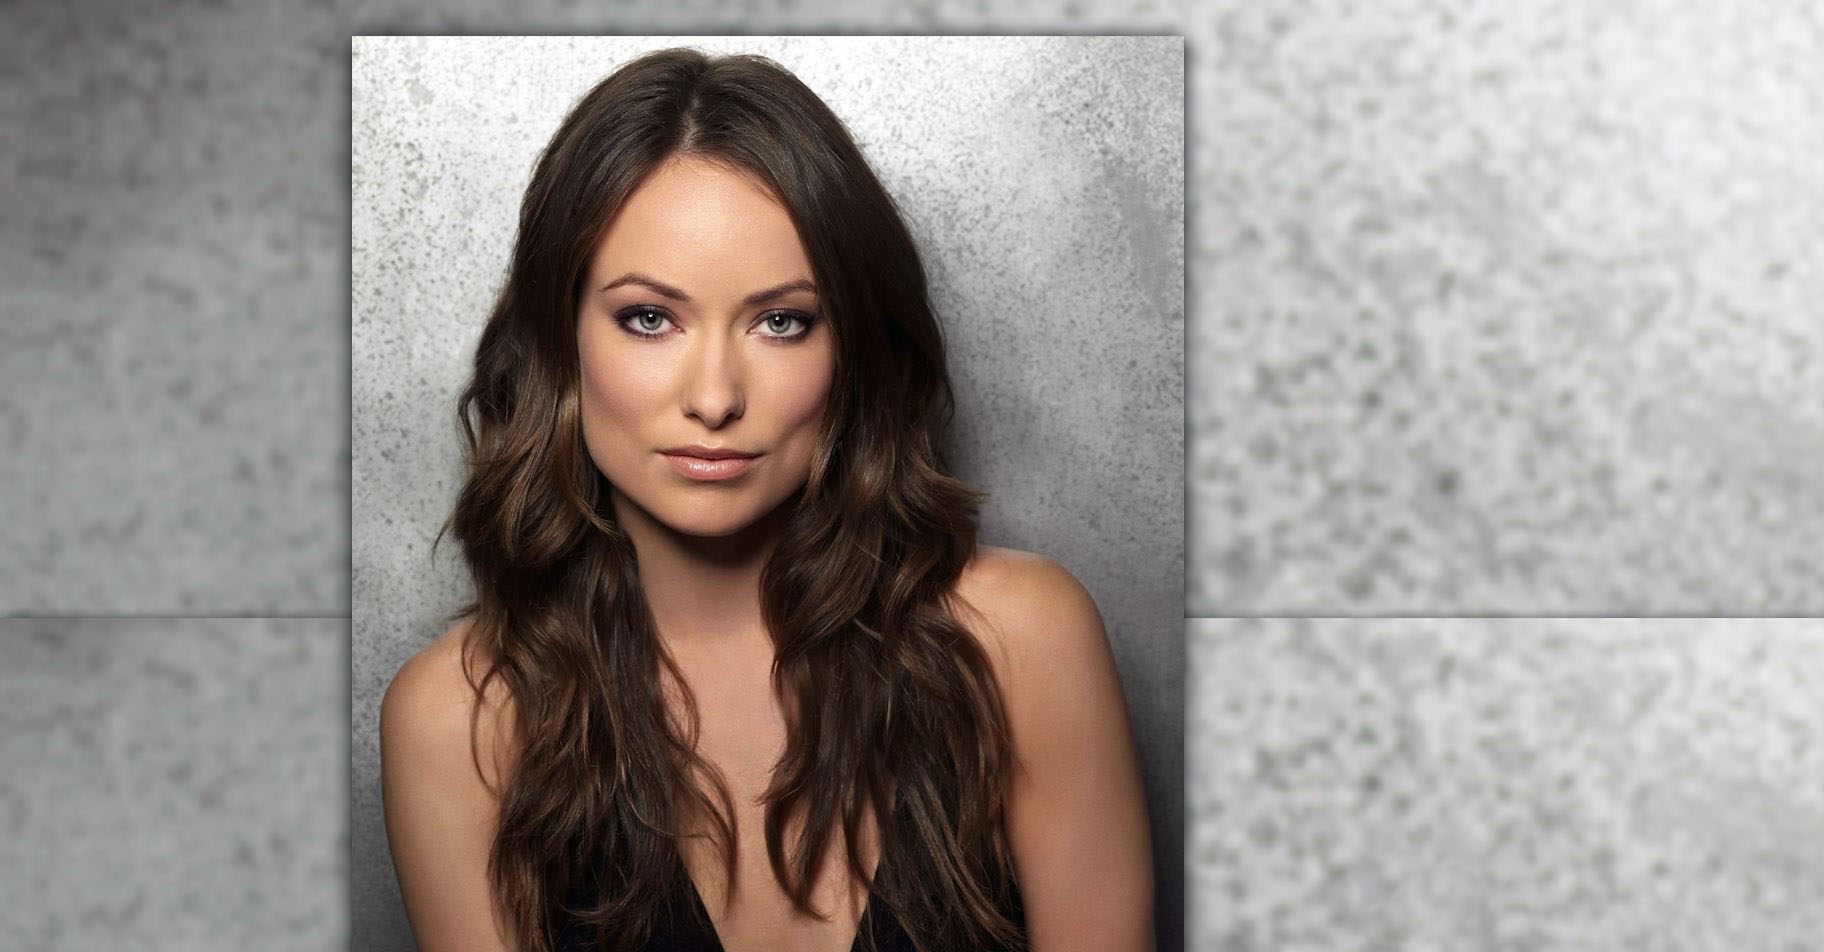 Free Download Olivia Wilde Wallpaper Hd 1824x952 For Your